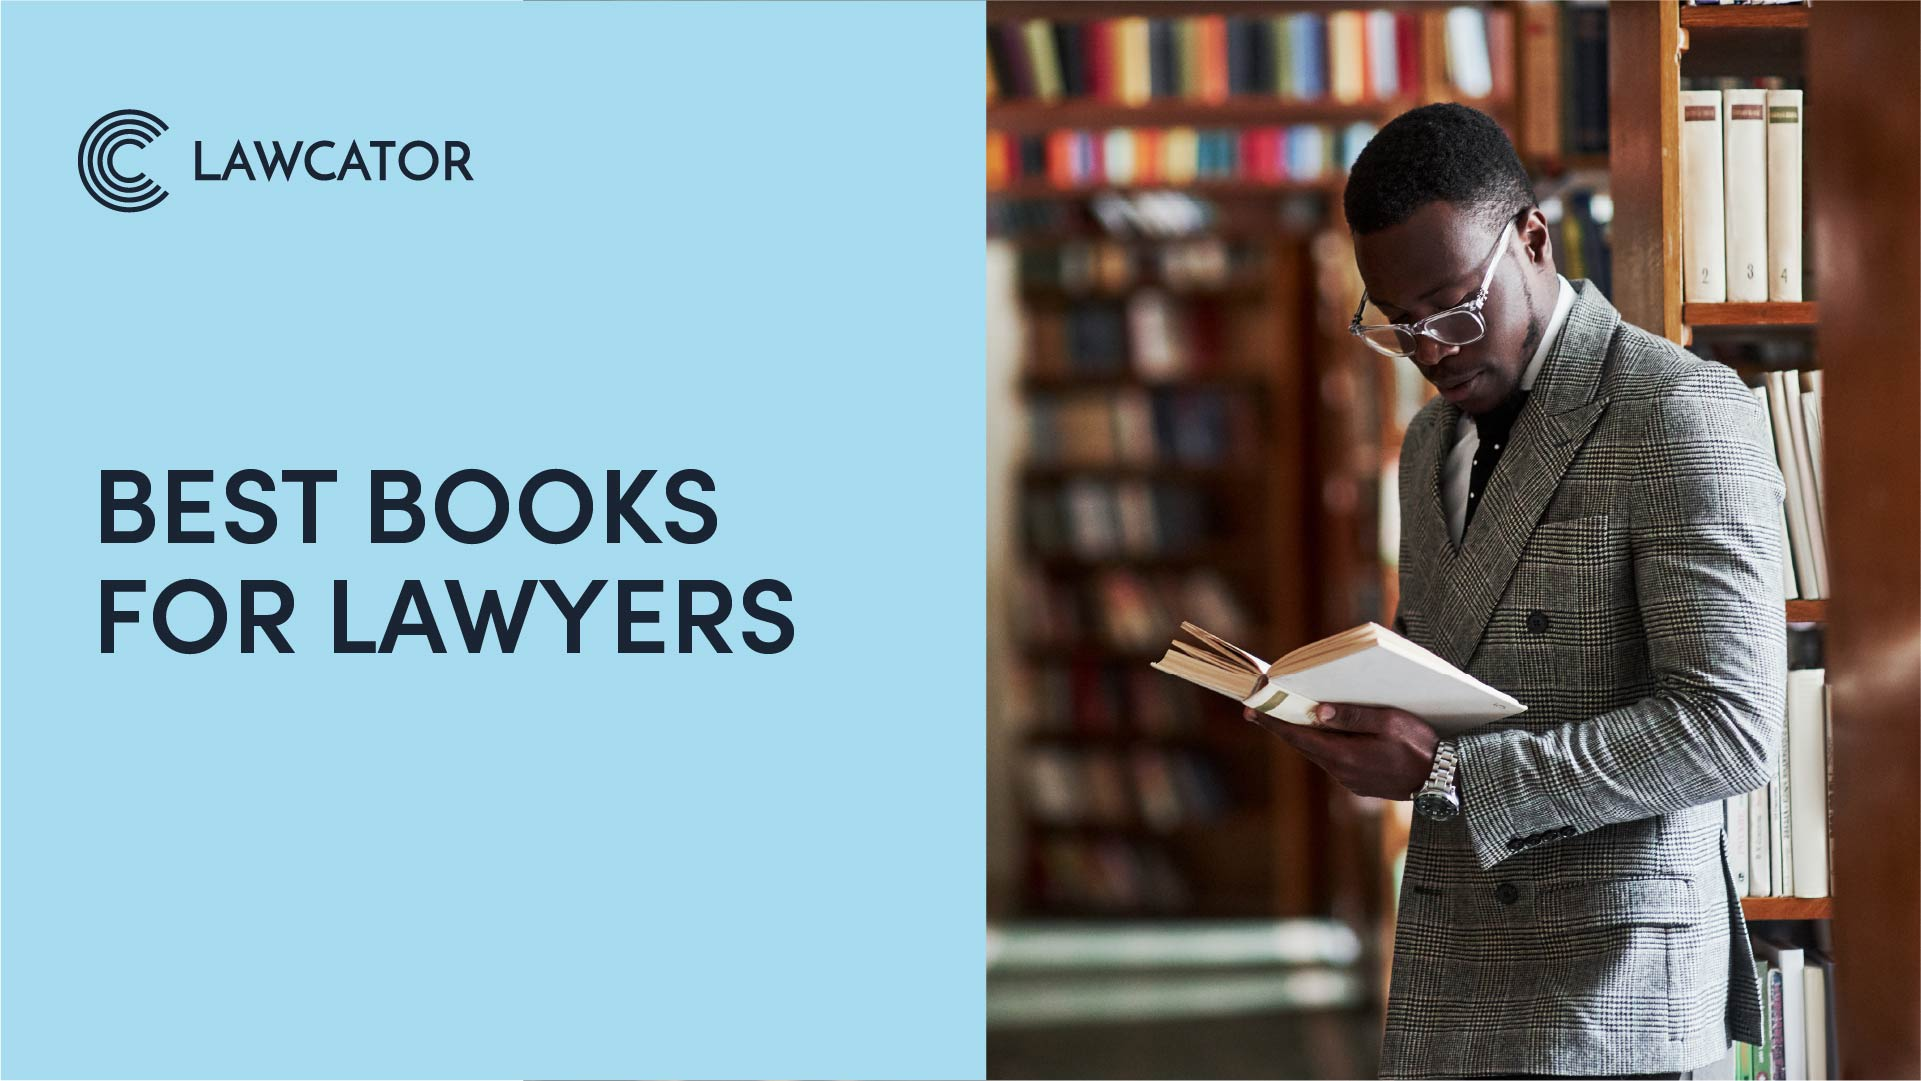 Best Books for Lawyers